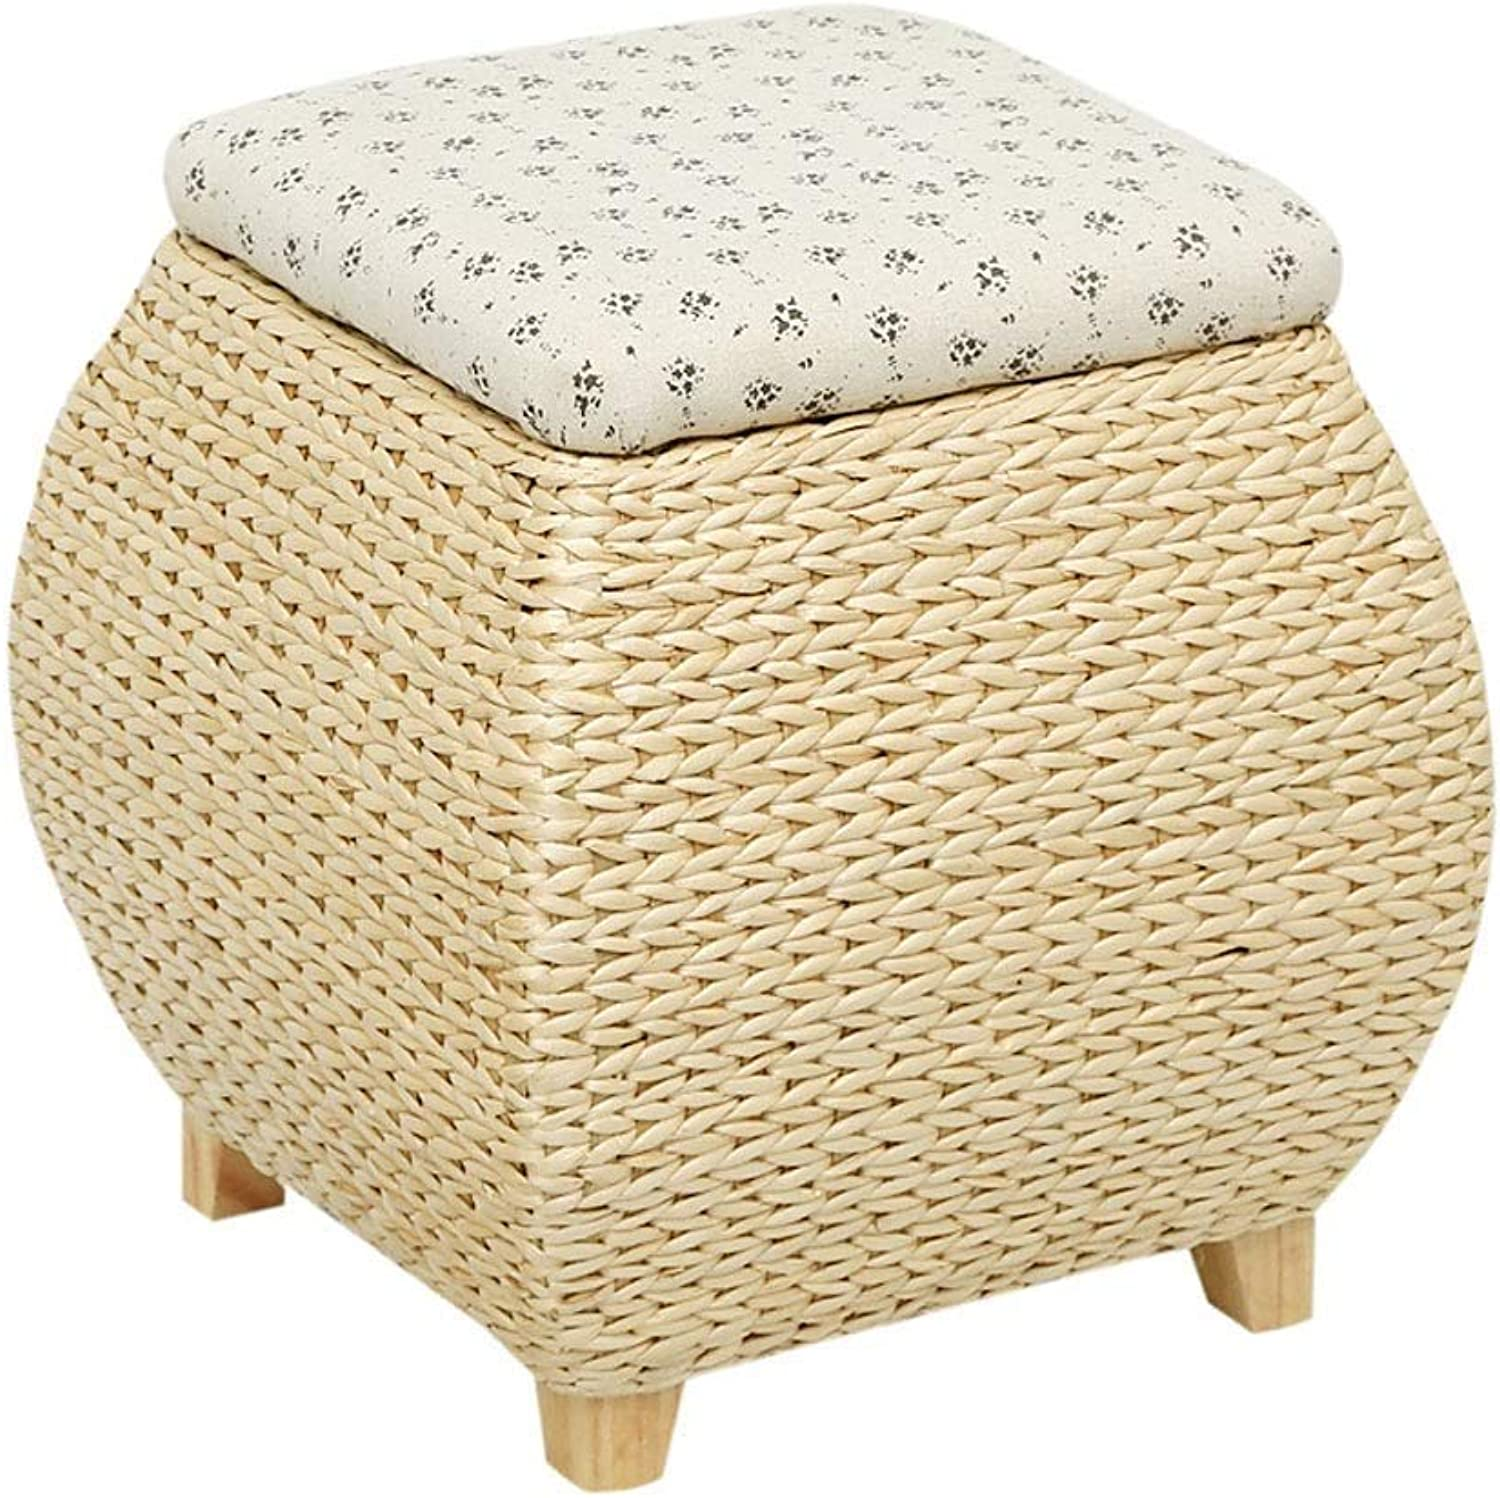 Change shoes Stool Garden Cover Storage Box Footstool Straw Bench Storage Rattan Wood Sofa Bench LEBAO (color   B)